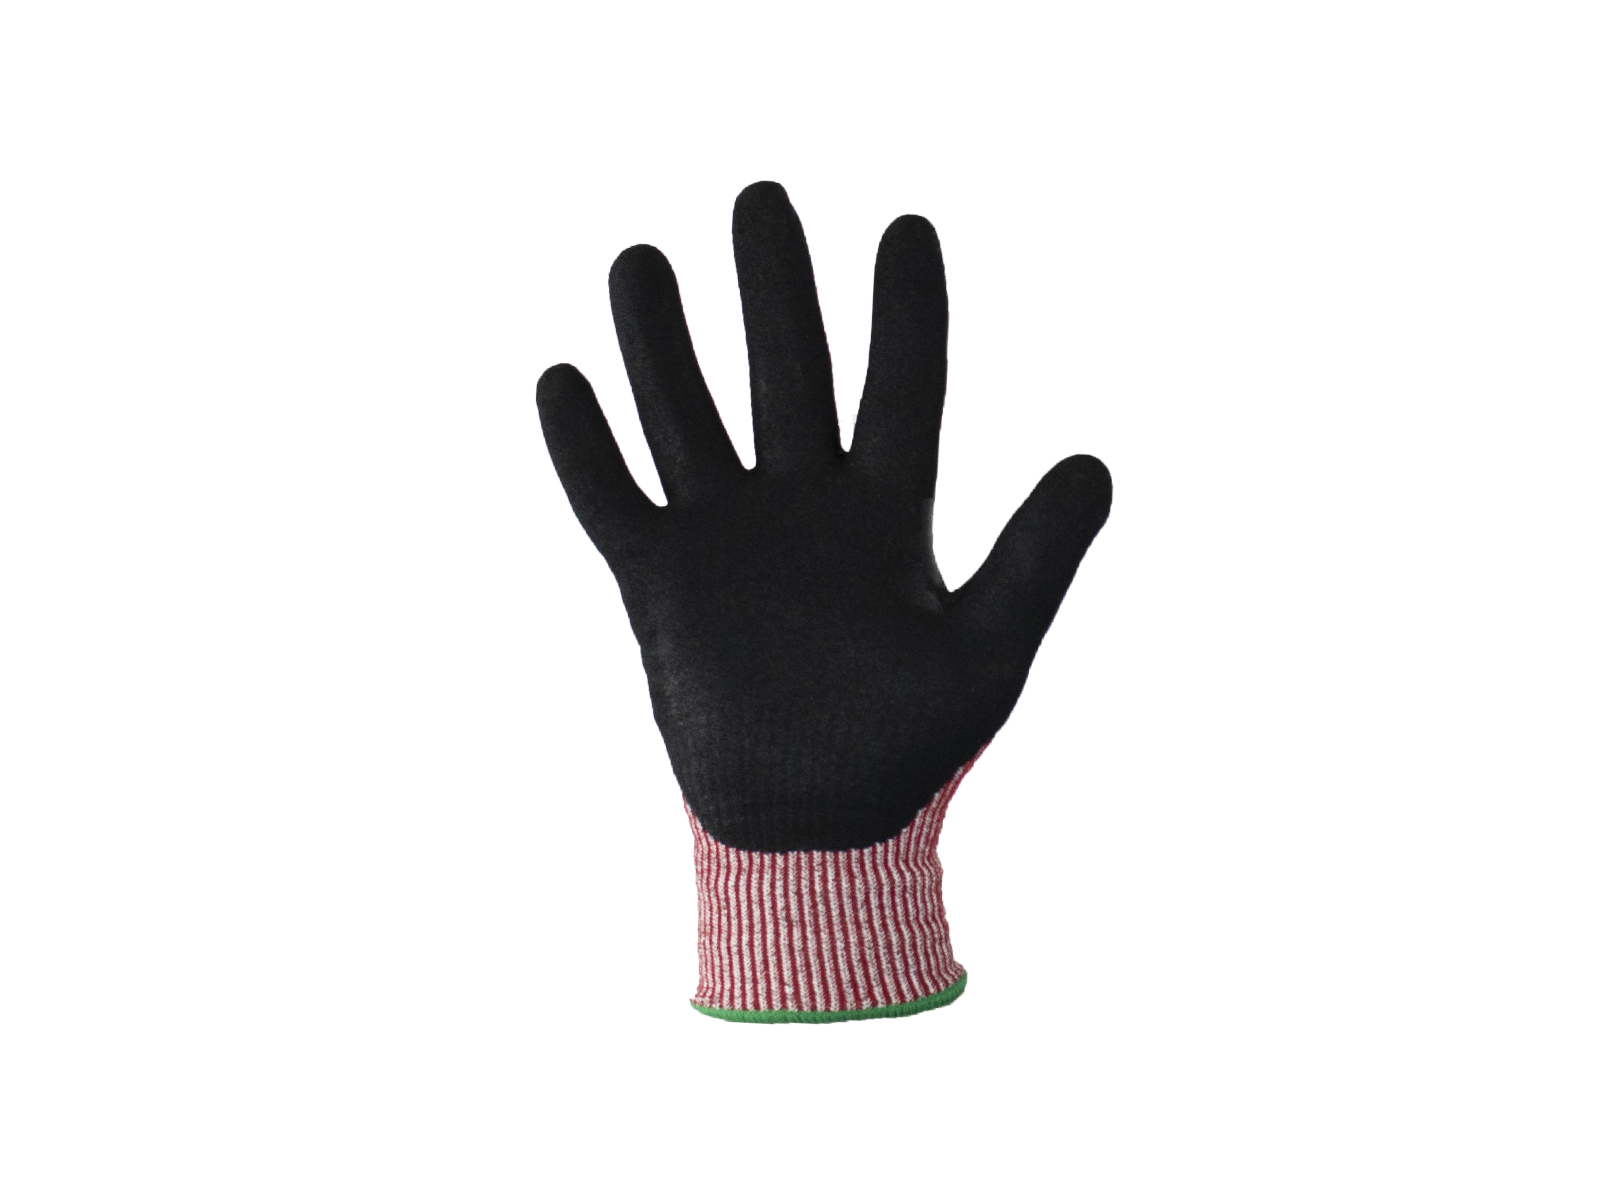 Samurai Protection Cut 5 Safety Gloves w/ excellent grip in wet, dry and oily application -1